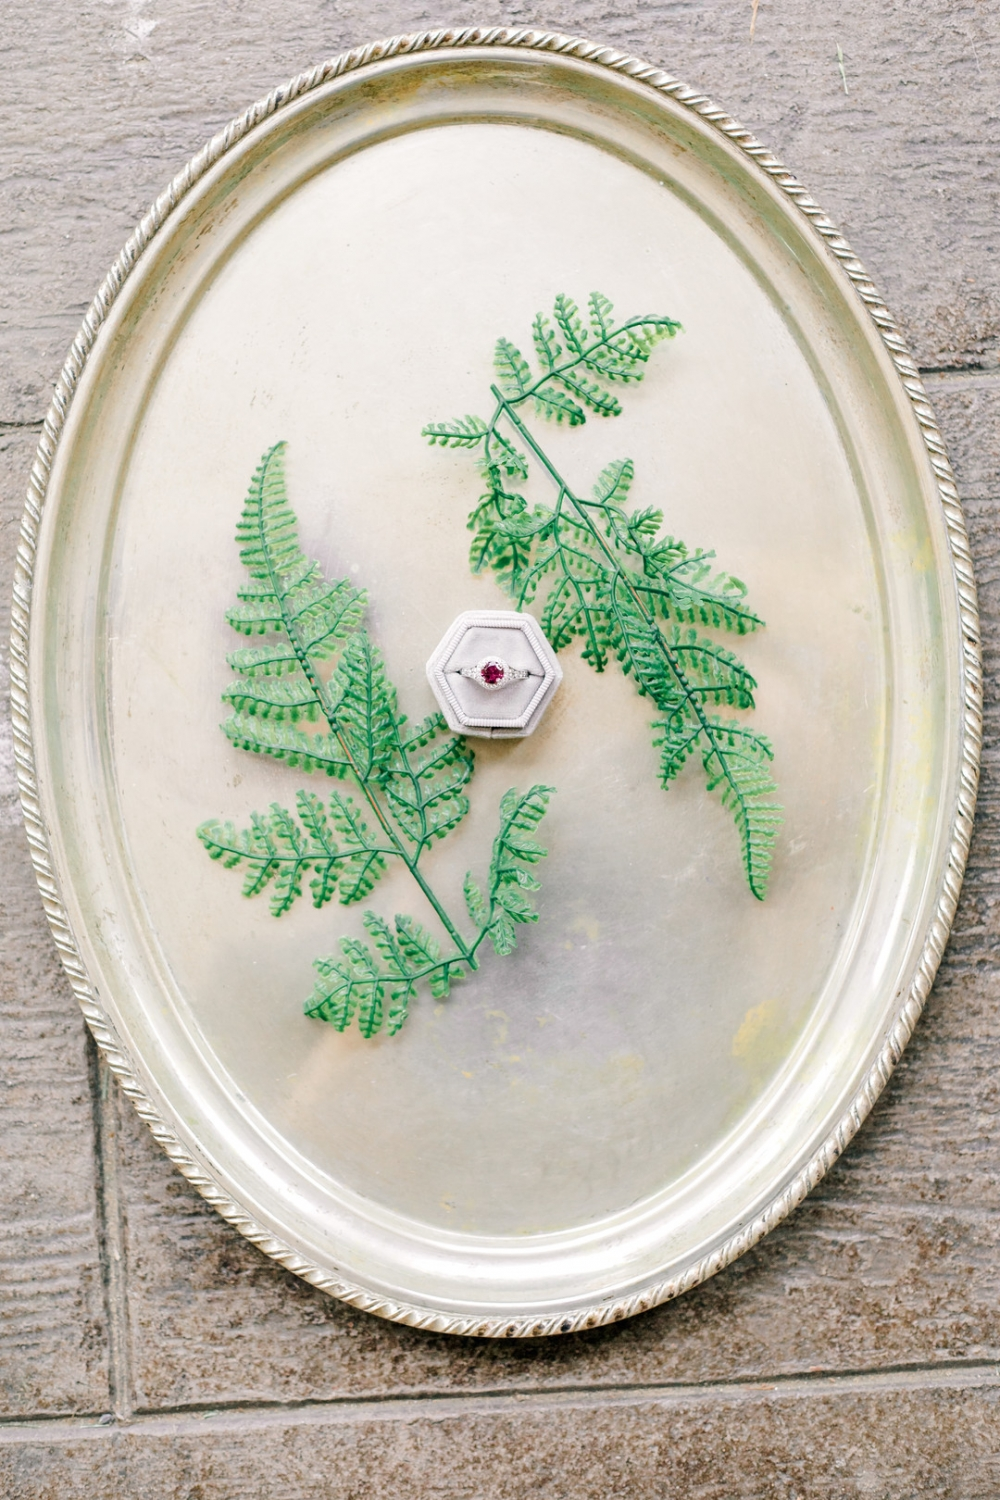 ring photo inspiration on a metallic platter with a pretty ring box and greenery